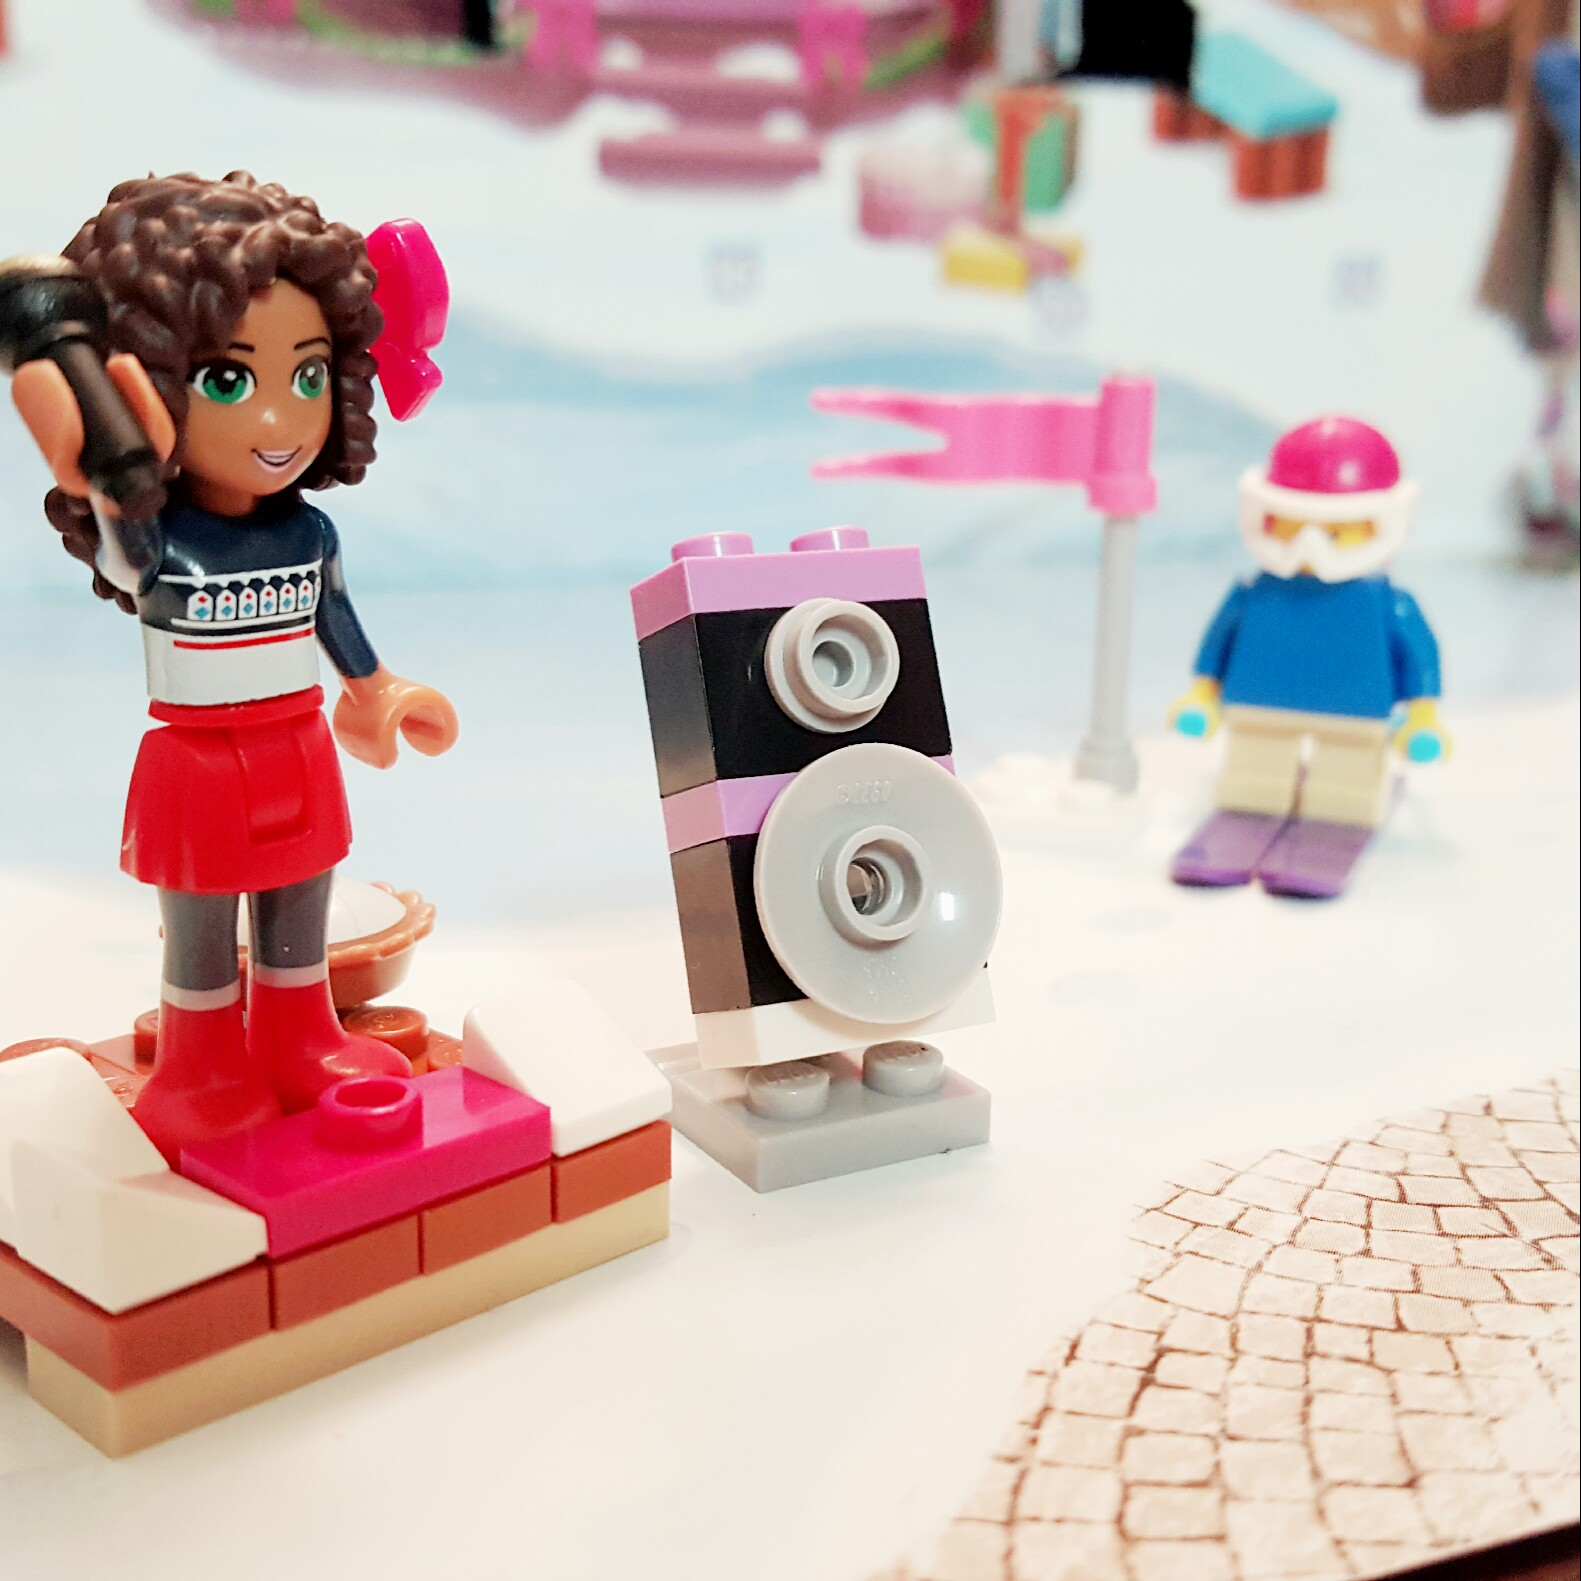 """""""Can you hear me?"""" - Day 8 Speaker from LEGO Friends Advent Calendar"""